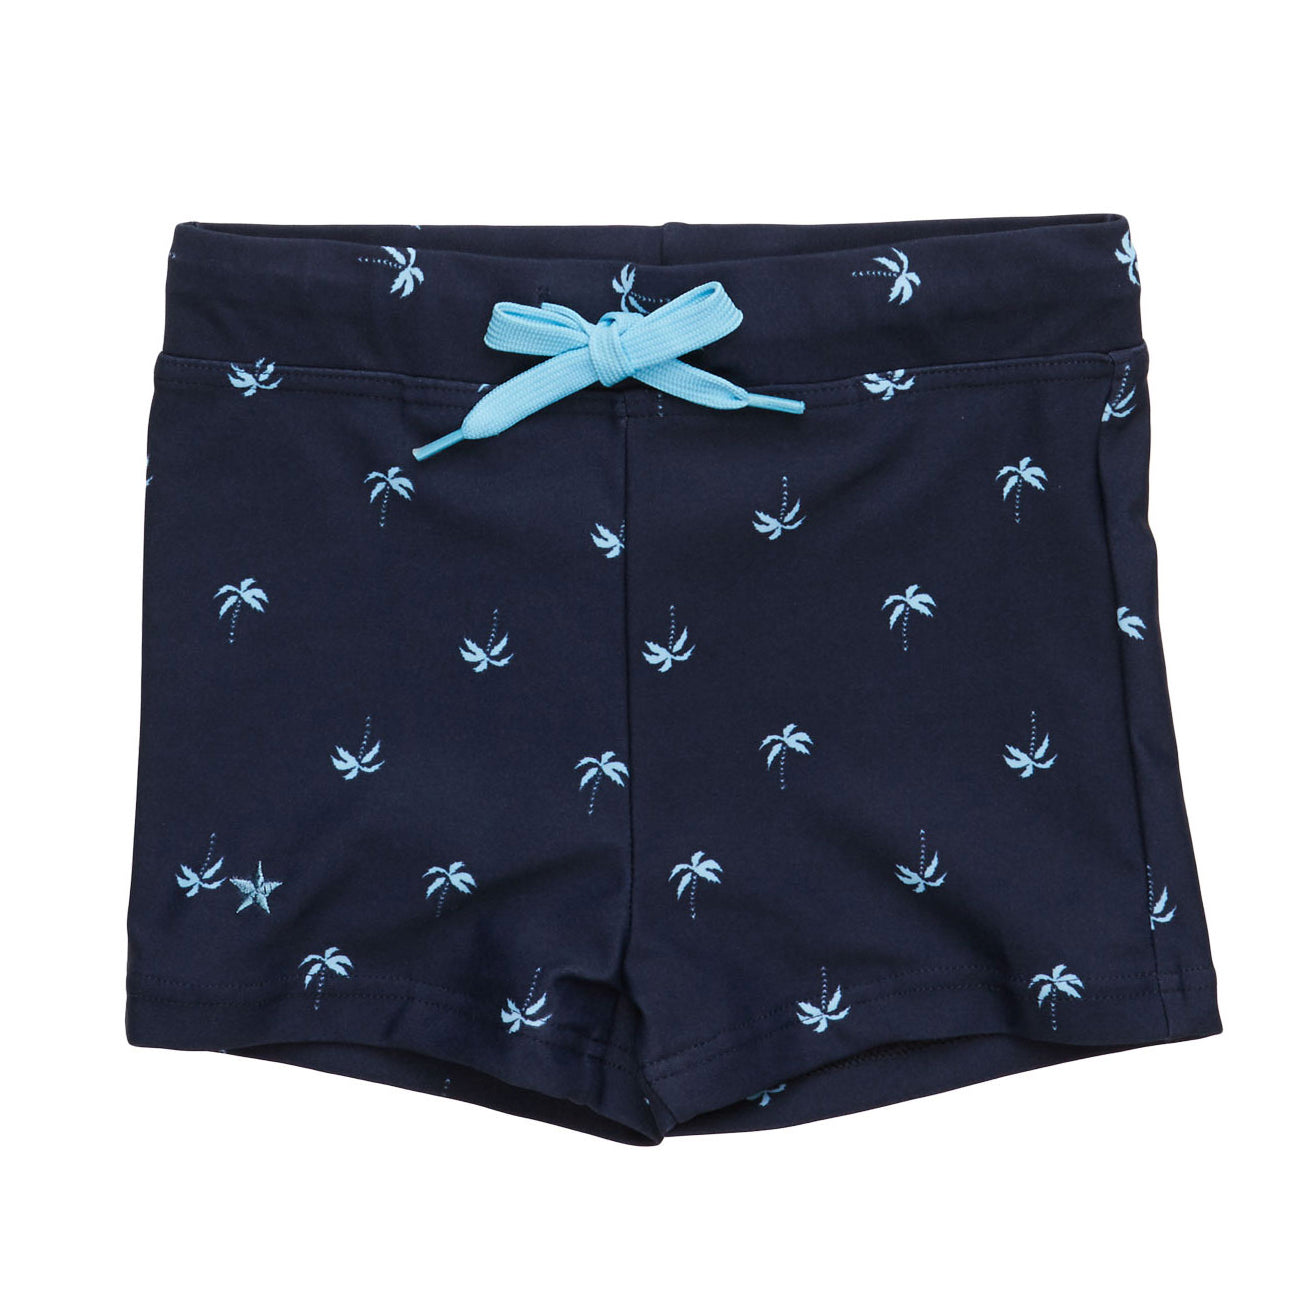 UV50 Protective Gerry Aquatic Blue Swim Trunks